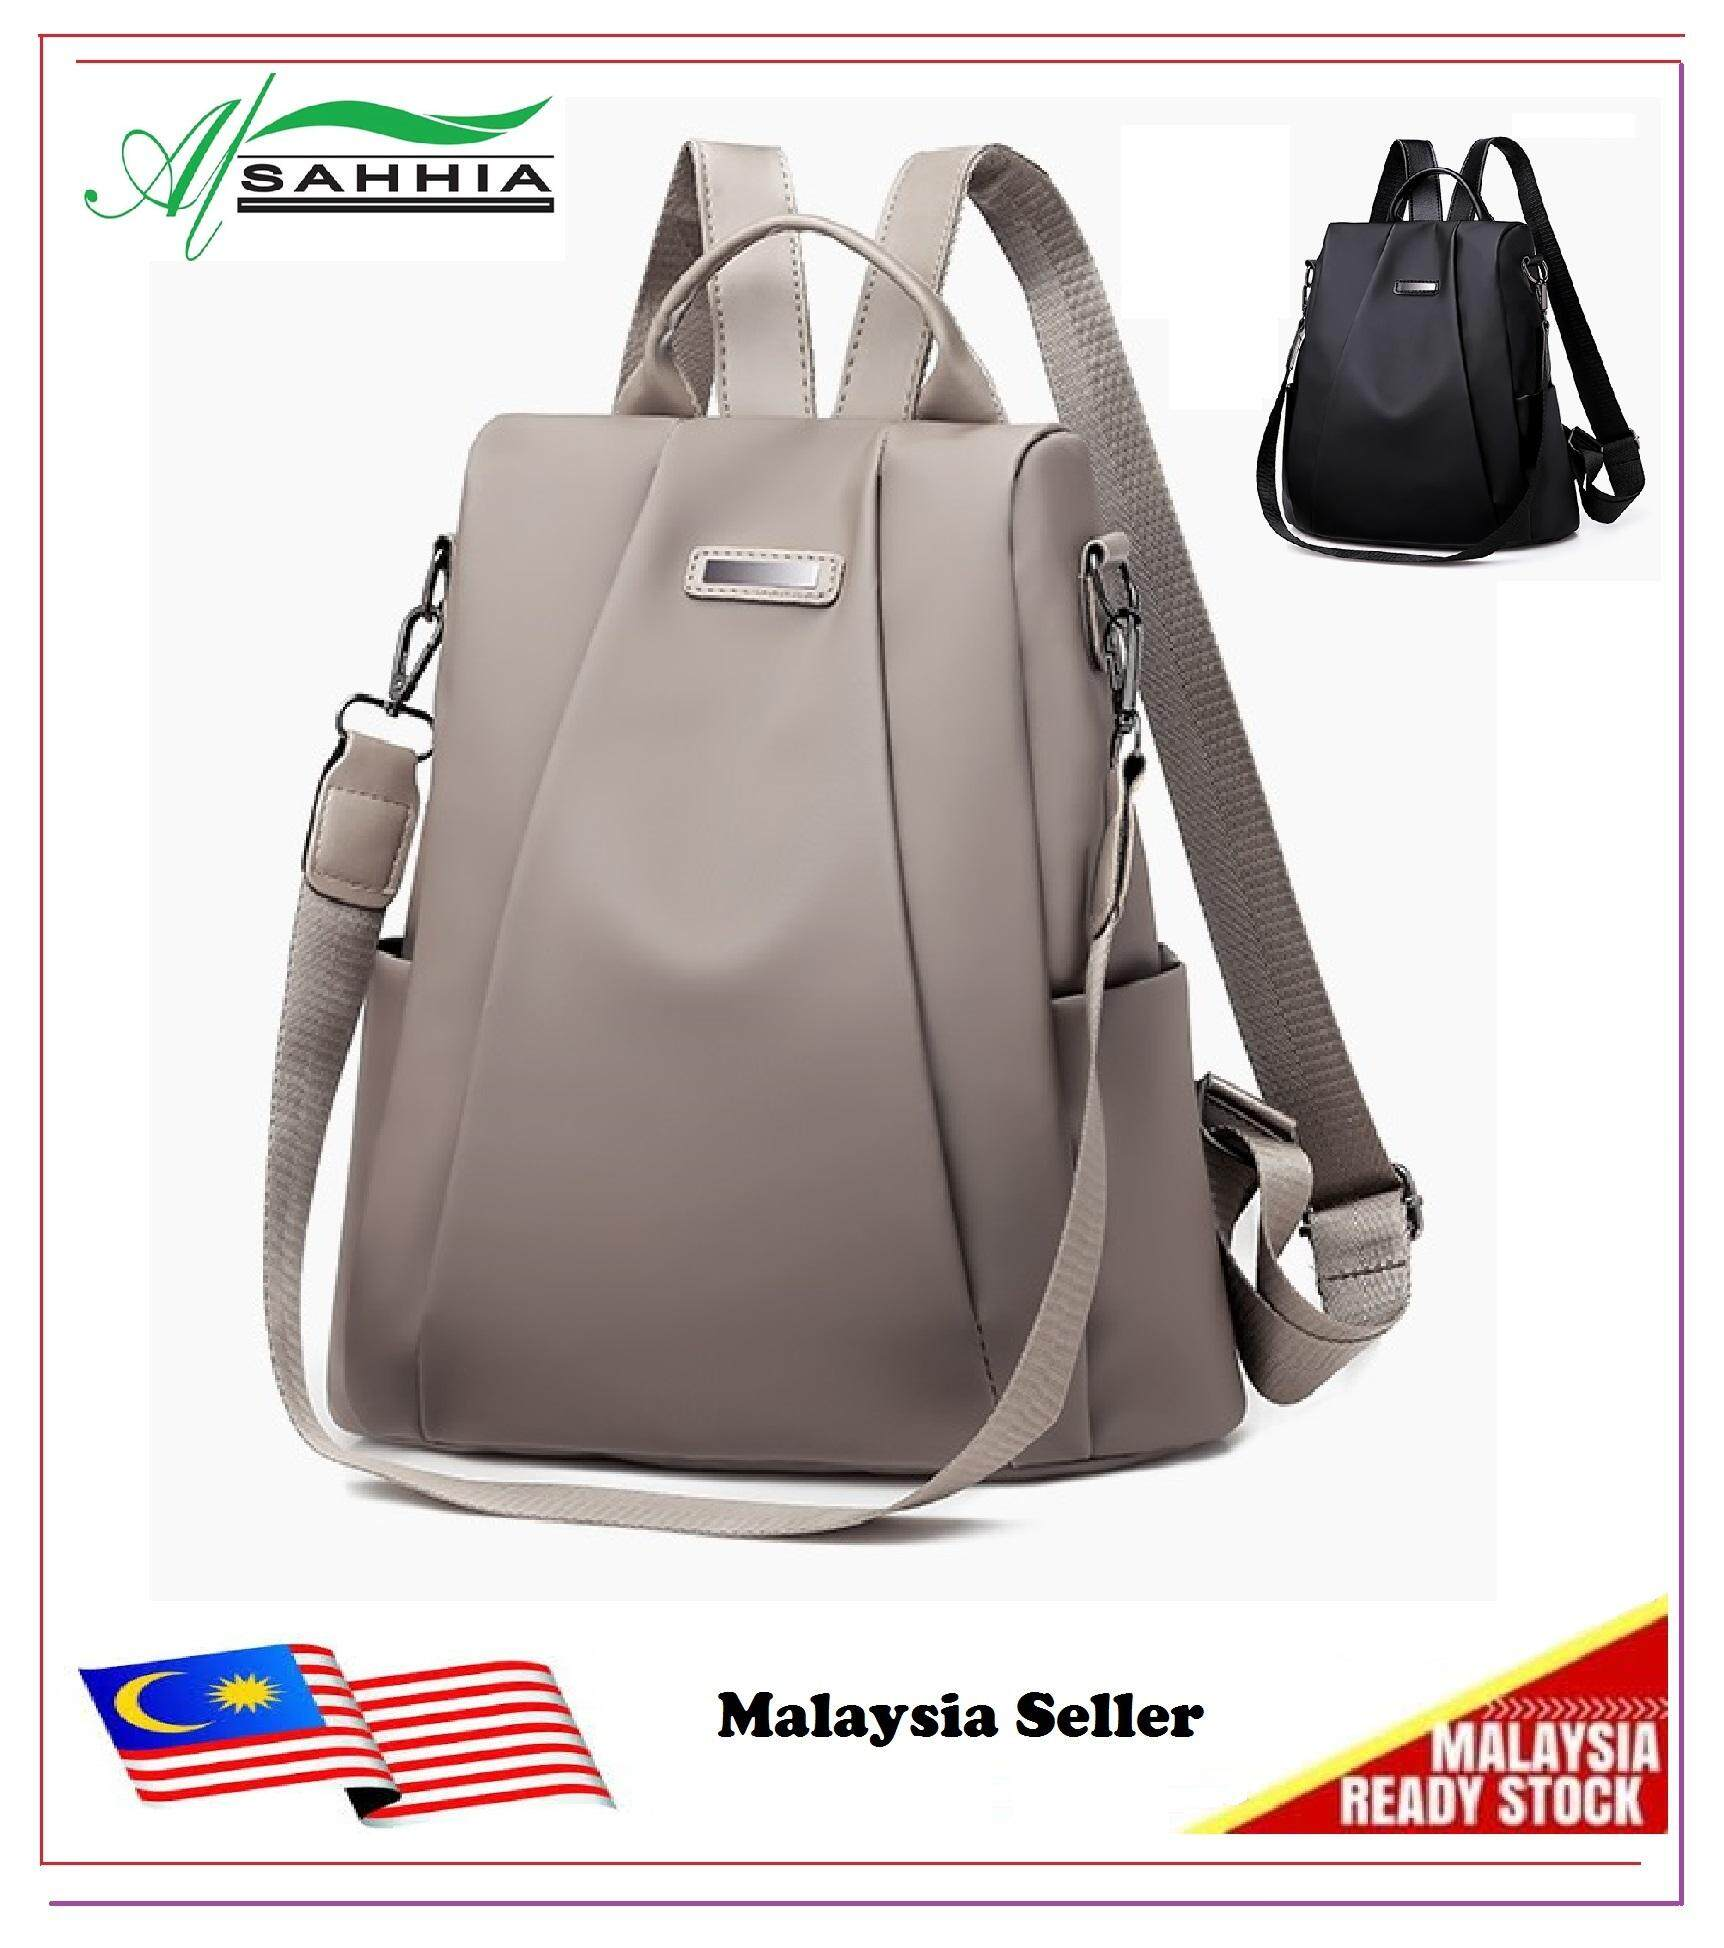 63f09f2677f2 3R4 Al Sahhia Ready Stock Plain Oxford Cloth Anti Theft Backpack Casual  Lady Beg